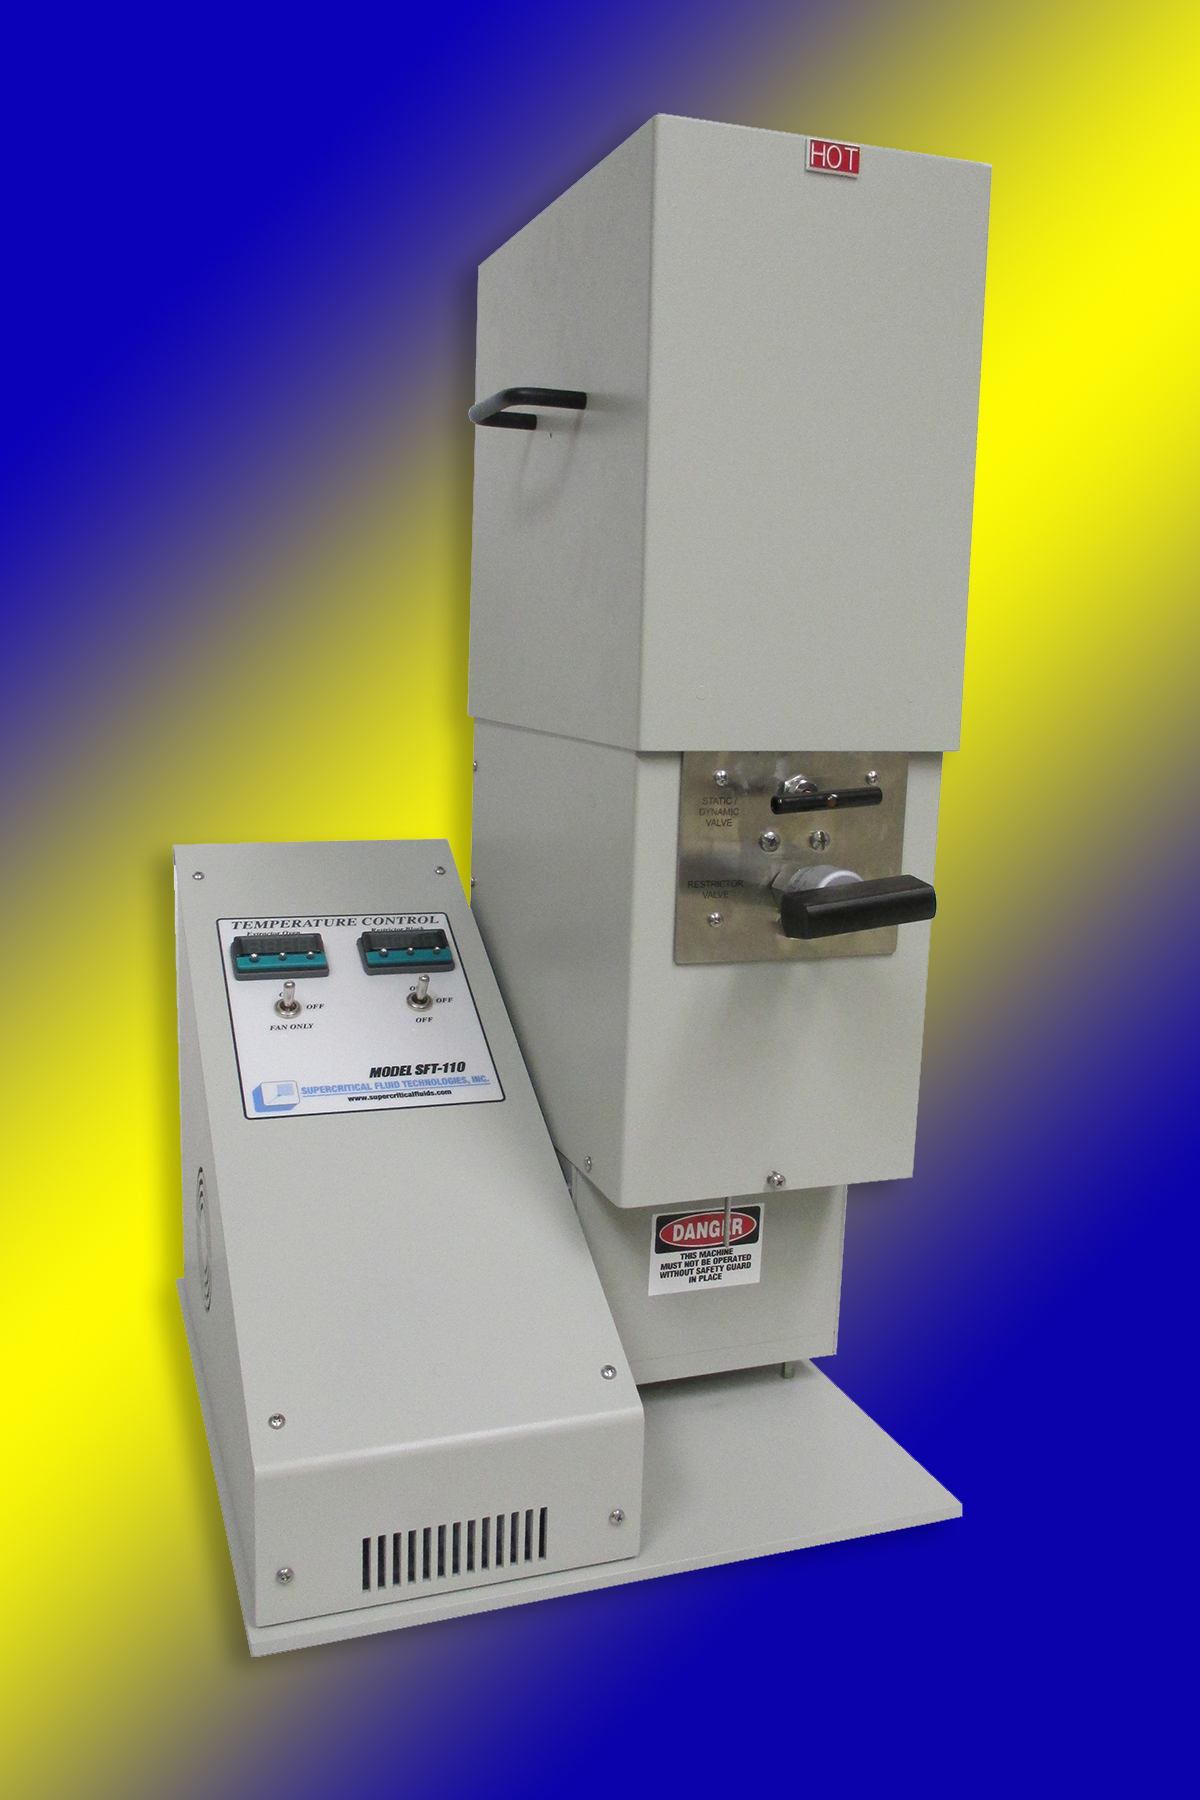 Sft 110 Supercritical Fluid Extractionsupercritical